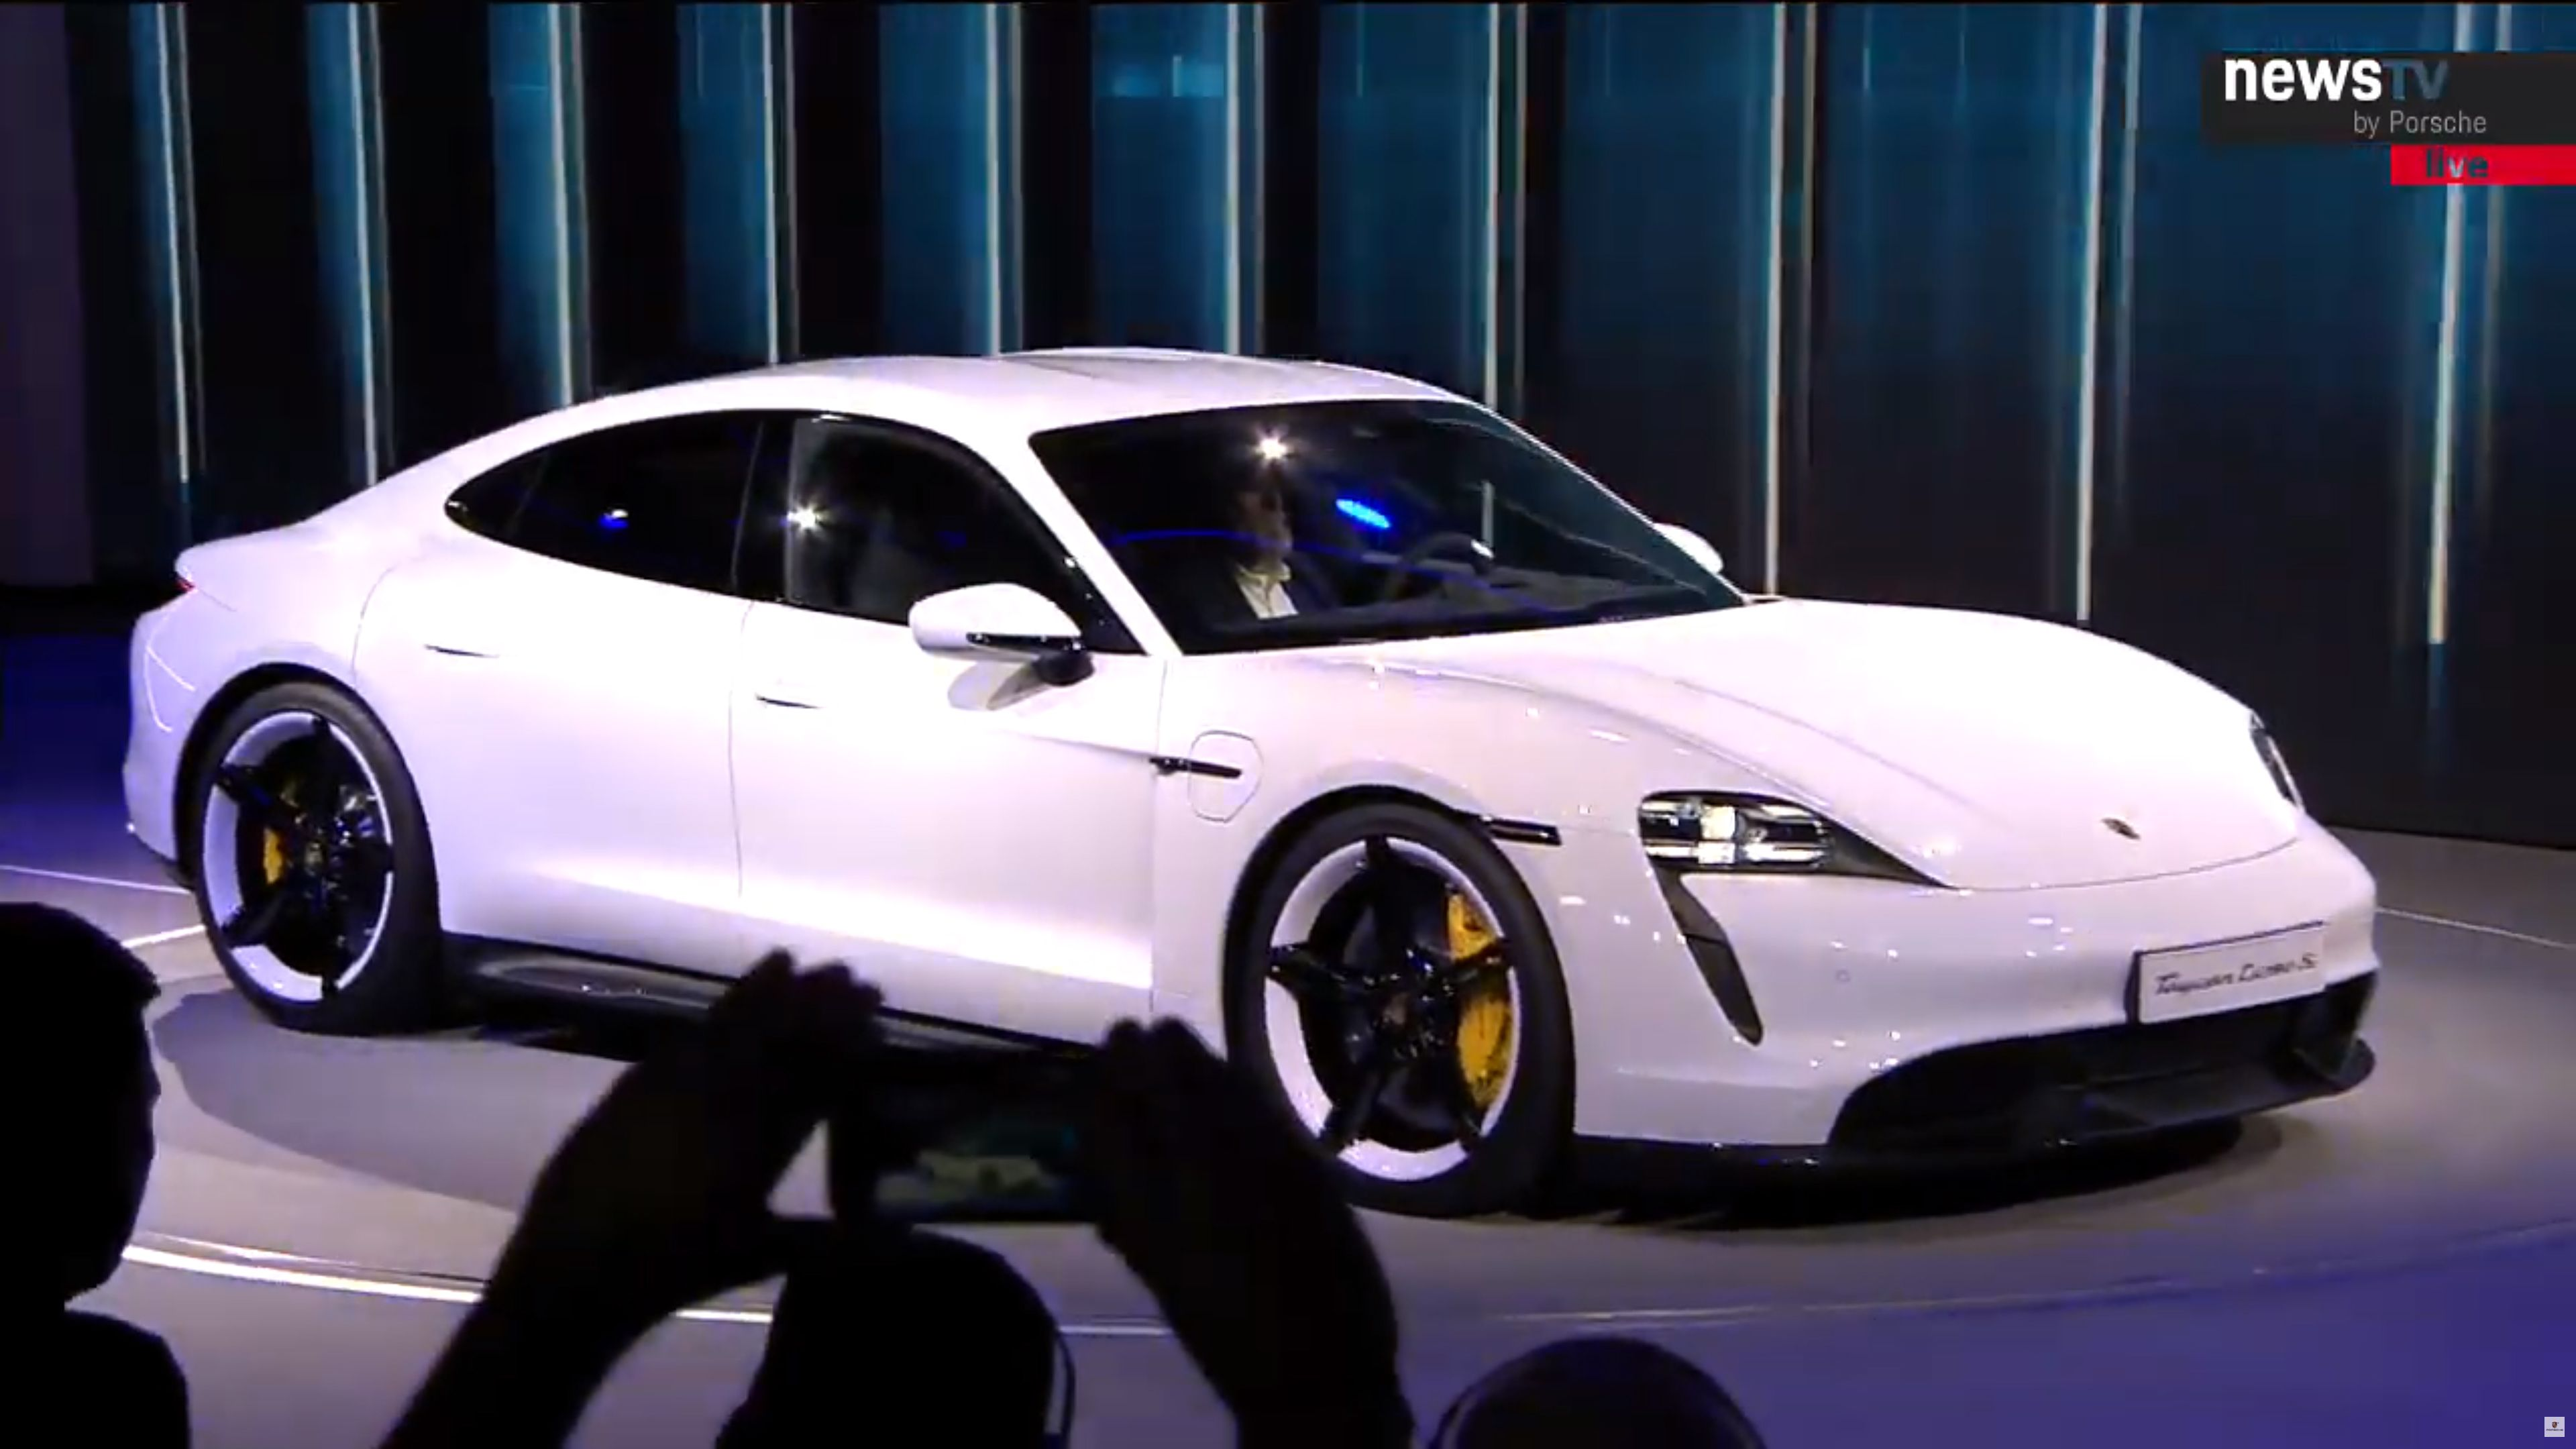 Porsche Revealed The Taycan And It Is An Electric Game Changer Top Speed Porsche Porsche Taycan Tesla Roadster